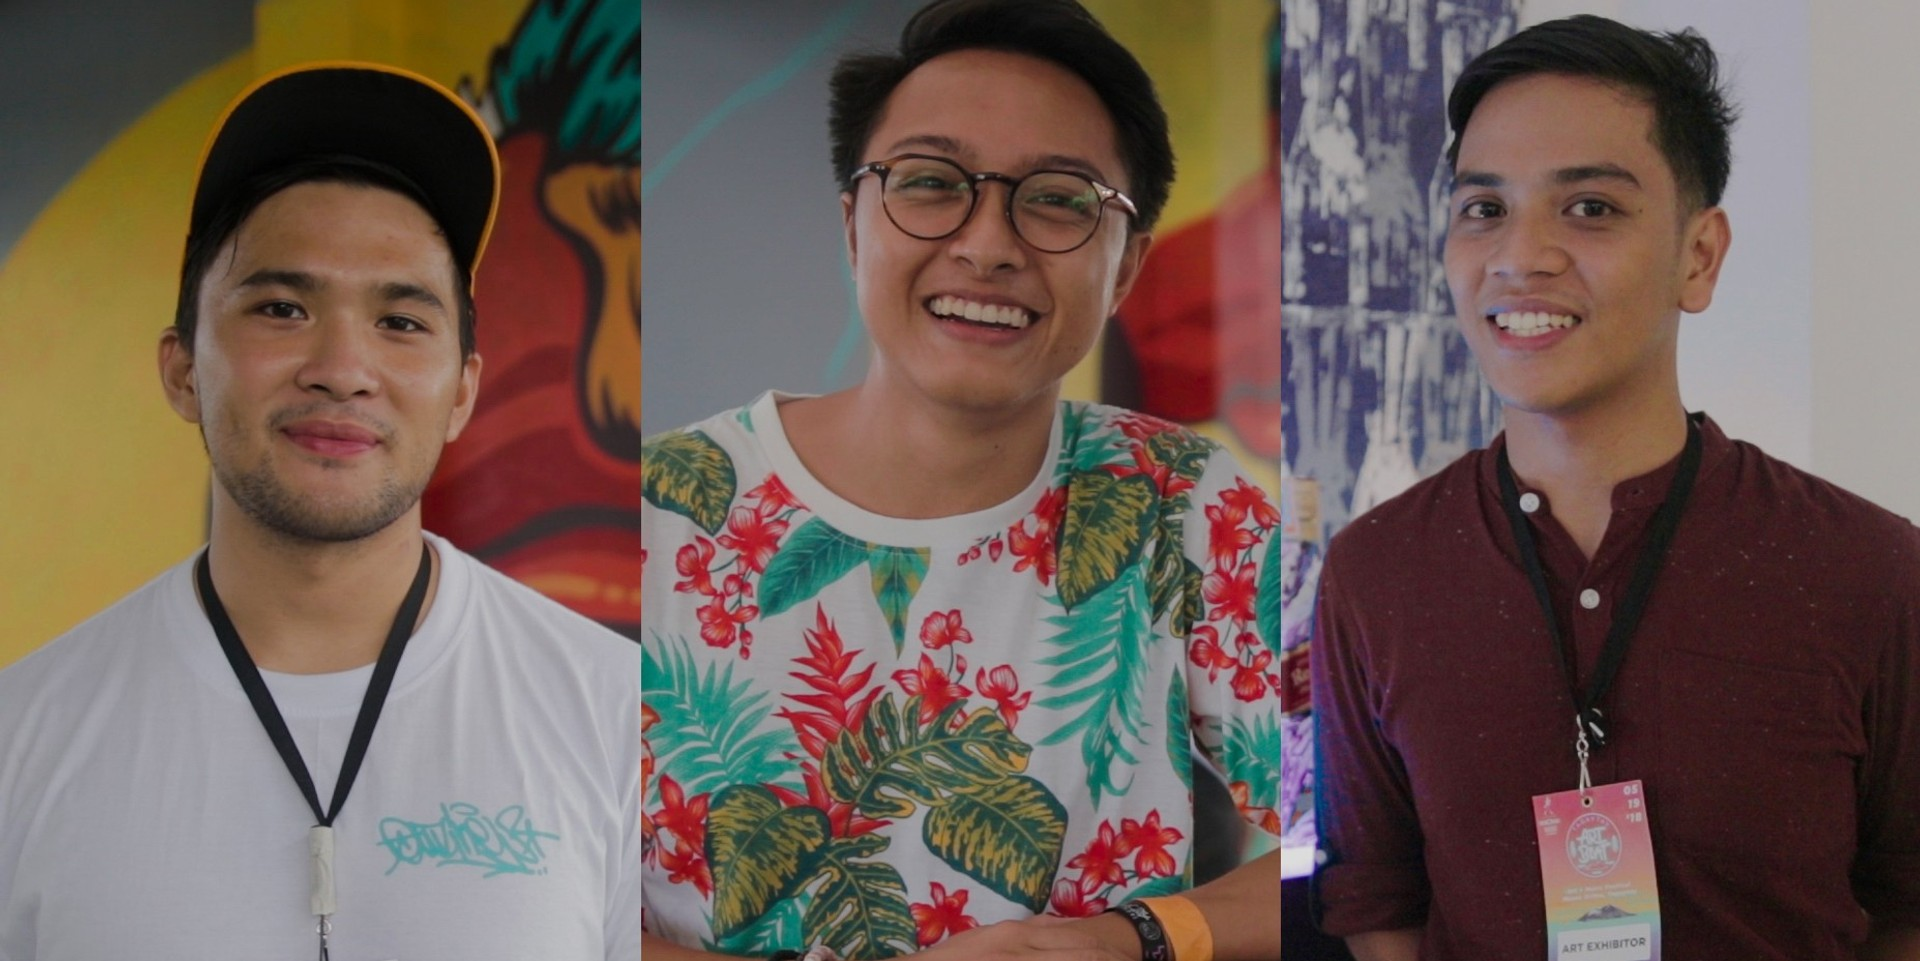 Jappy Agoncillo, Lee Caces, Razel Mari talk about their art, music at Tagaytay Art Beat 3